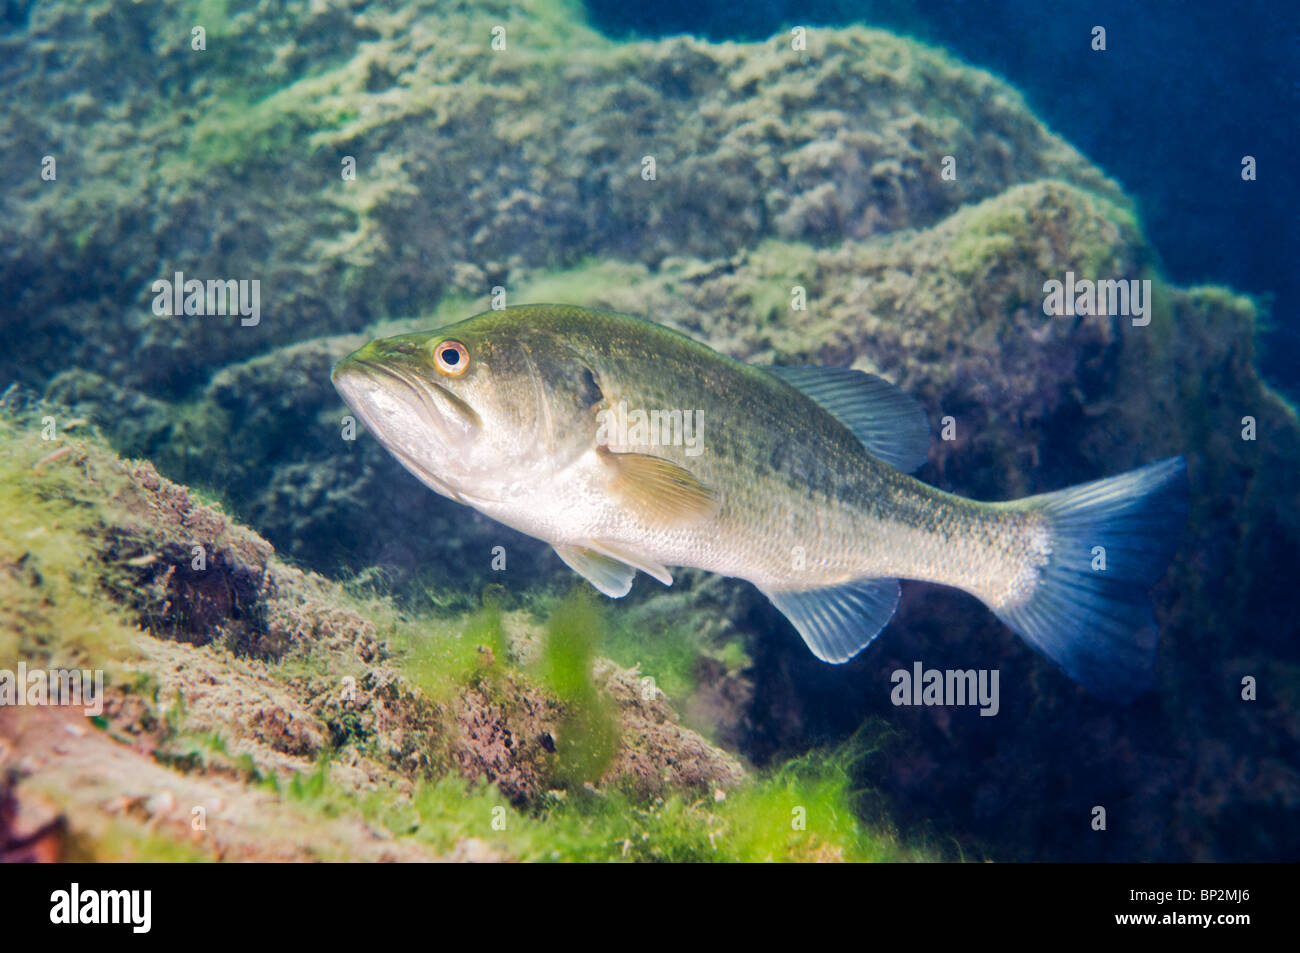 Freshwater fish online canada - A Largemouth Bass Freshwater Fish Patrols The Bottom Of A Quarry In Southern Ontario Canada